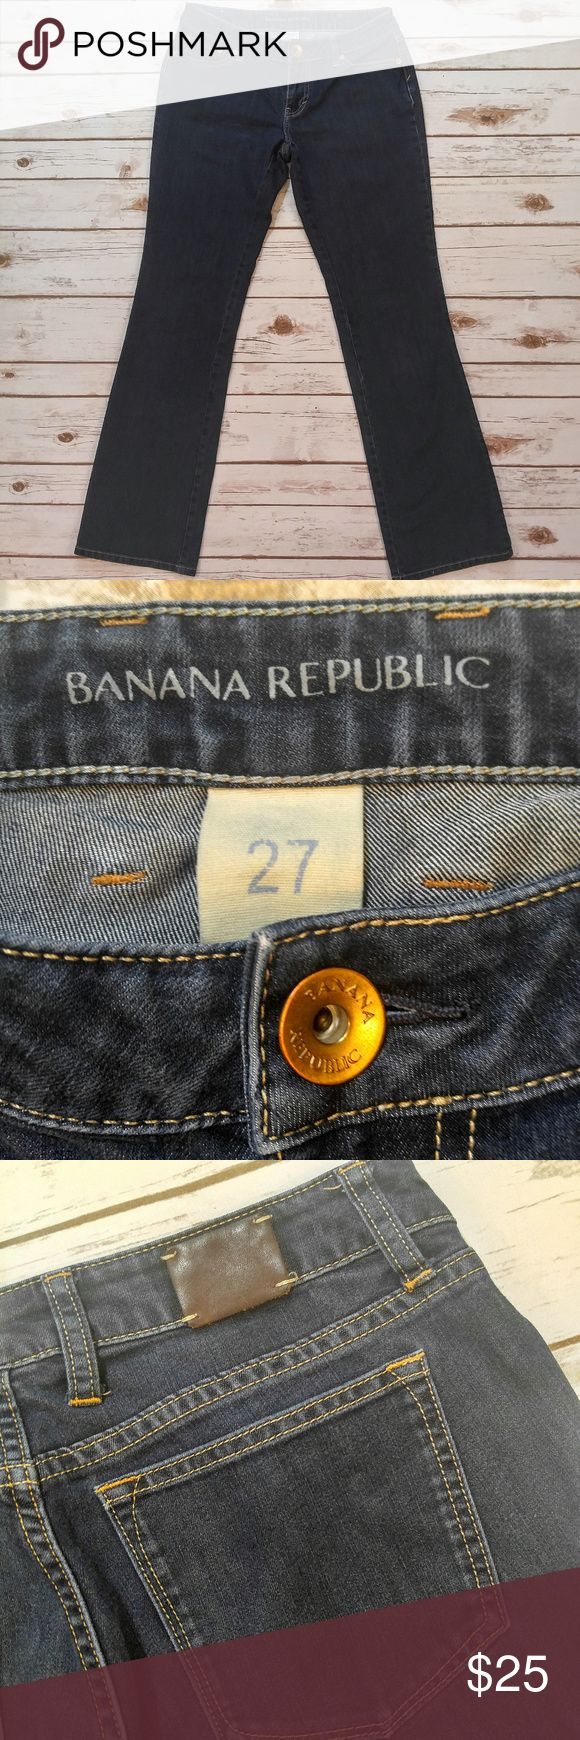 Banana Republic Curvy Boot Dark Wash Jeans Banana Republic Curvy Boot Dark Wash Jeans Size 27 in excellent condition. Fabric content is 60% Cotton, 36% Polyester, 4% Lastol. Please check out photo for exact flat measurements. I ship the same or next day depending on if the post office is closed yet. Banana Republic Jeans Boot Cut